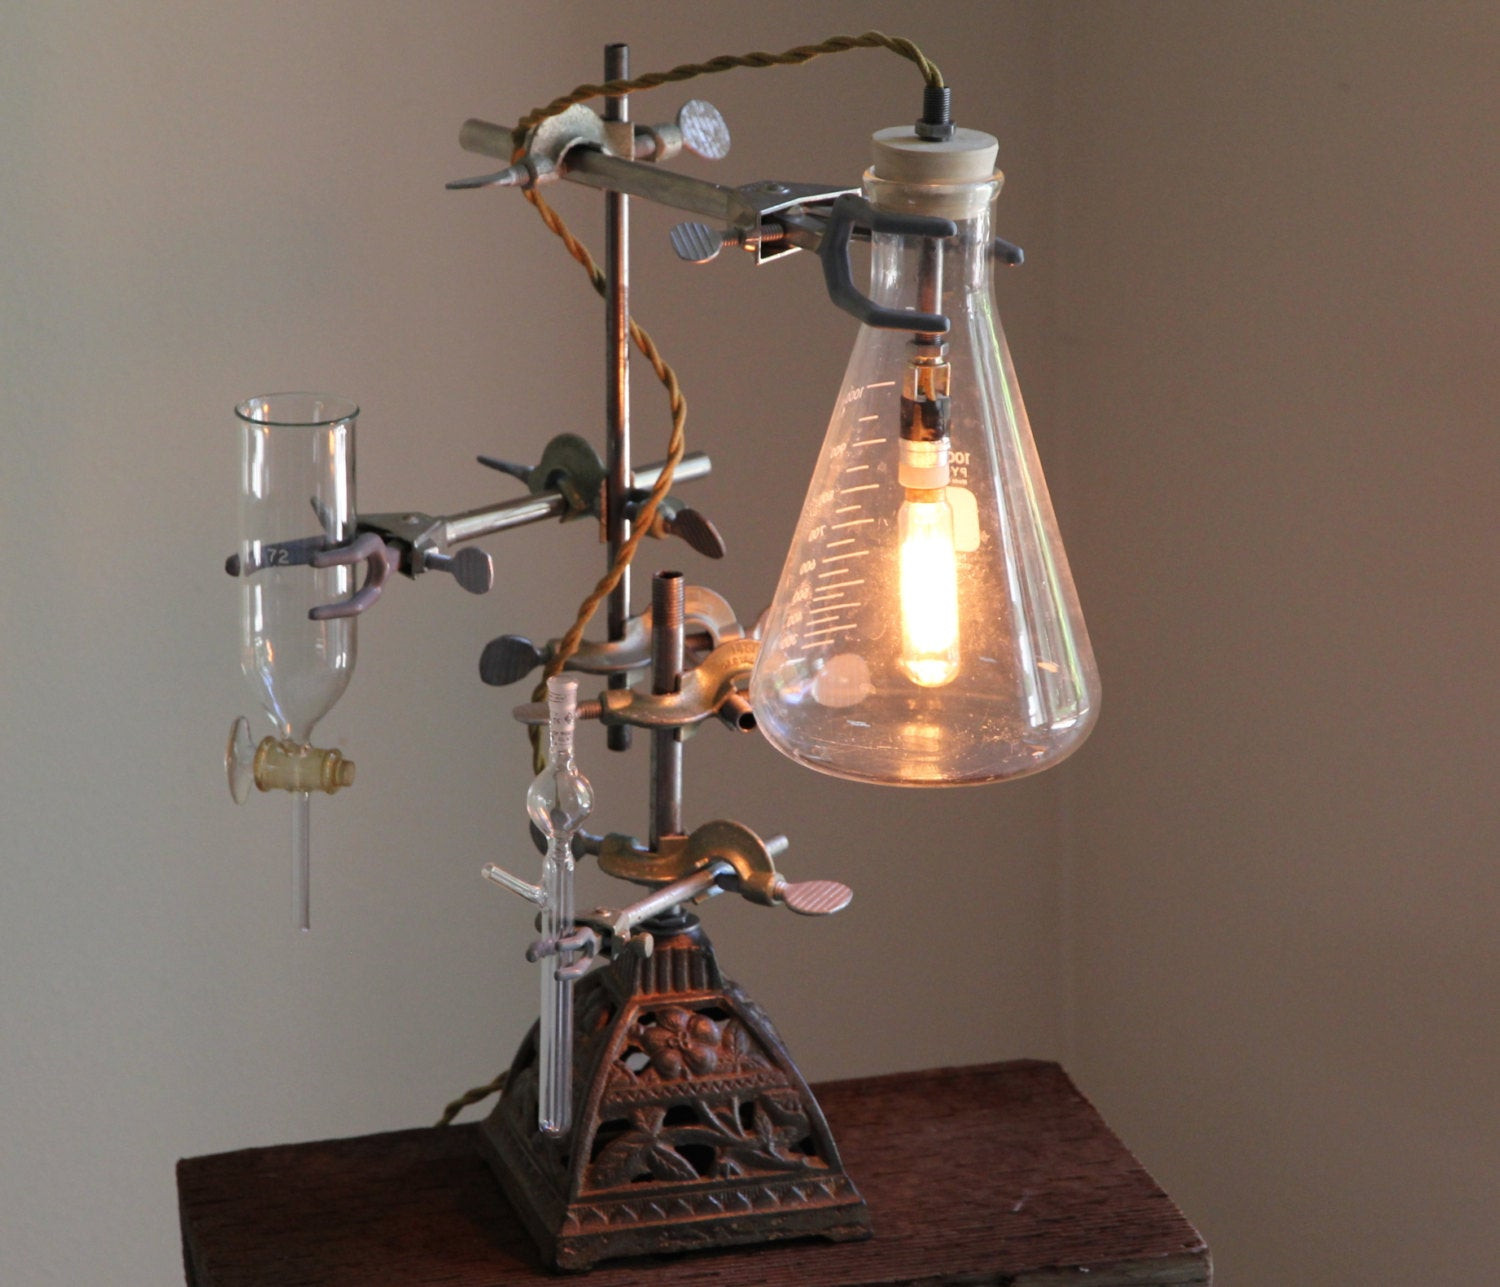 Best ideas about Industrial Desk Lamp . Save or Pin Industrial desk lamp steampunk flower vase lighting antique Now.